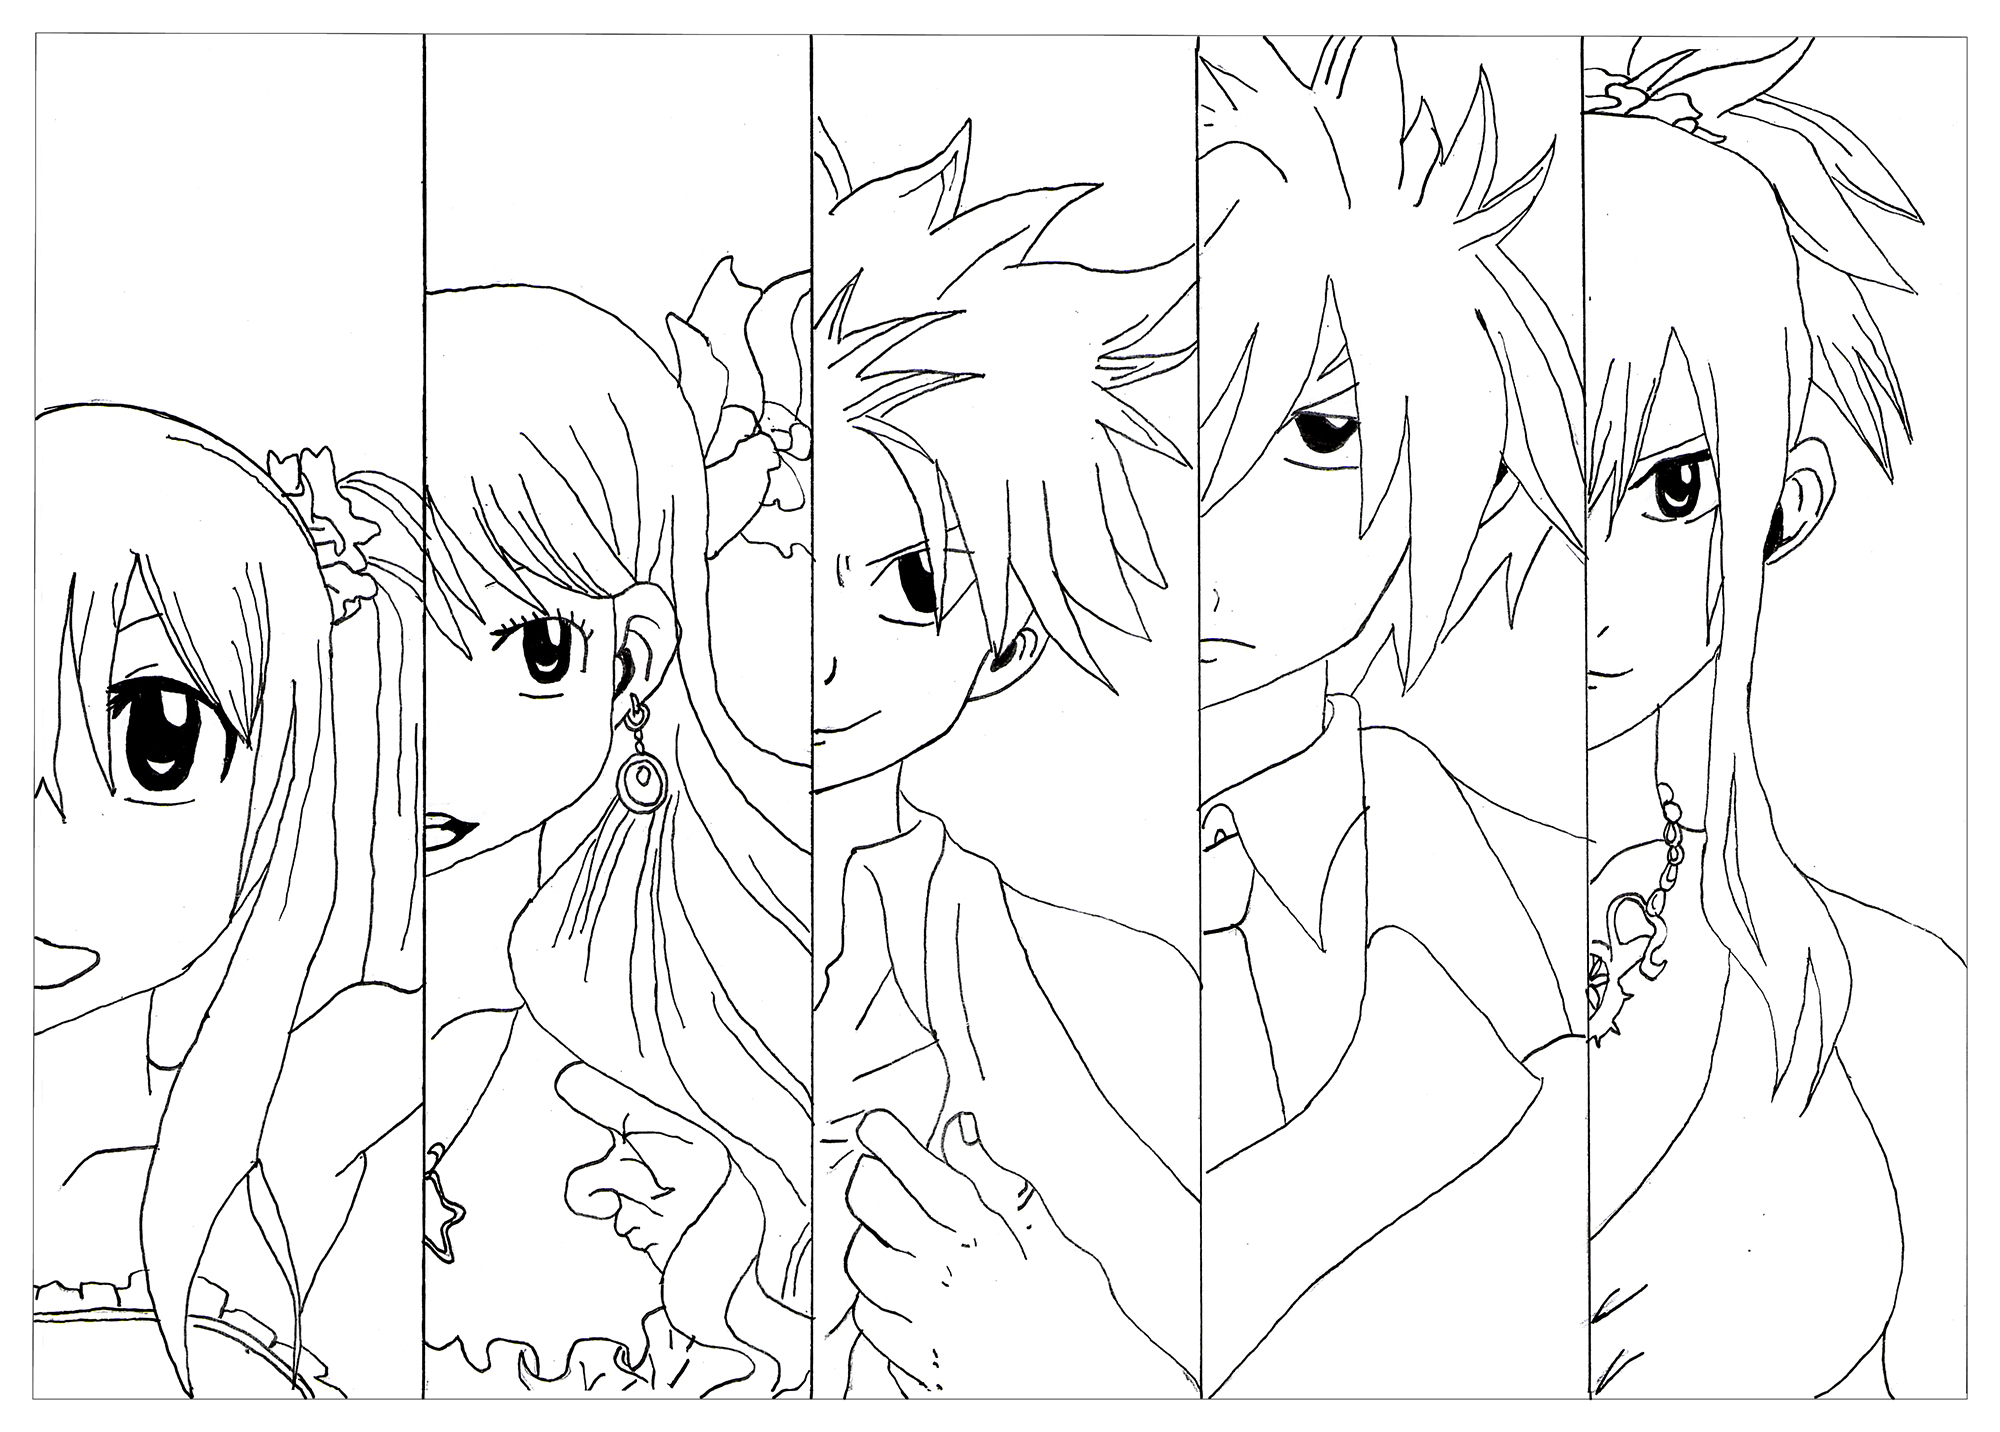 Here is a coloring page of the 5 members that form the strongest team in the Fairy tail Guild. It's Wendy, Lucy, Natsu, Grey and Erza